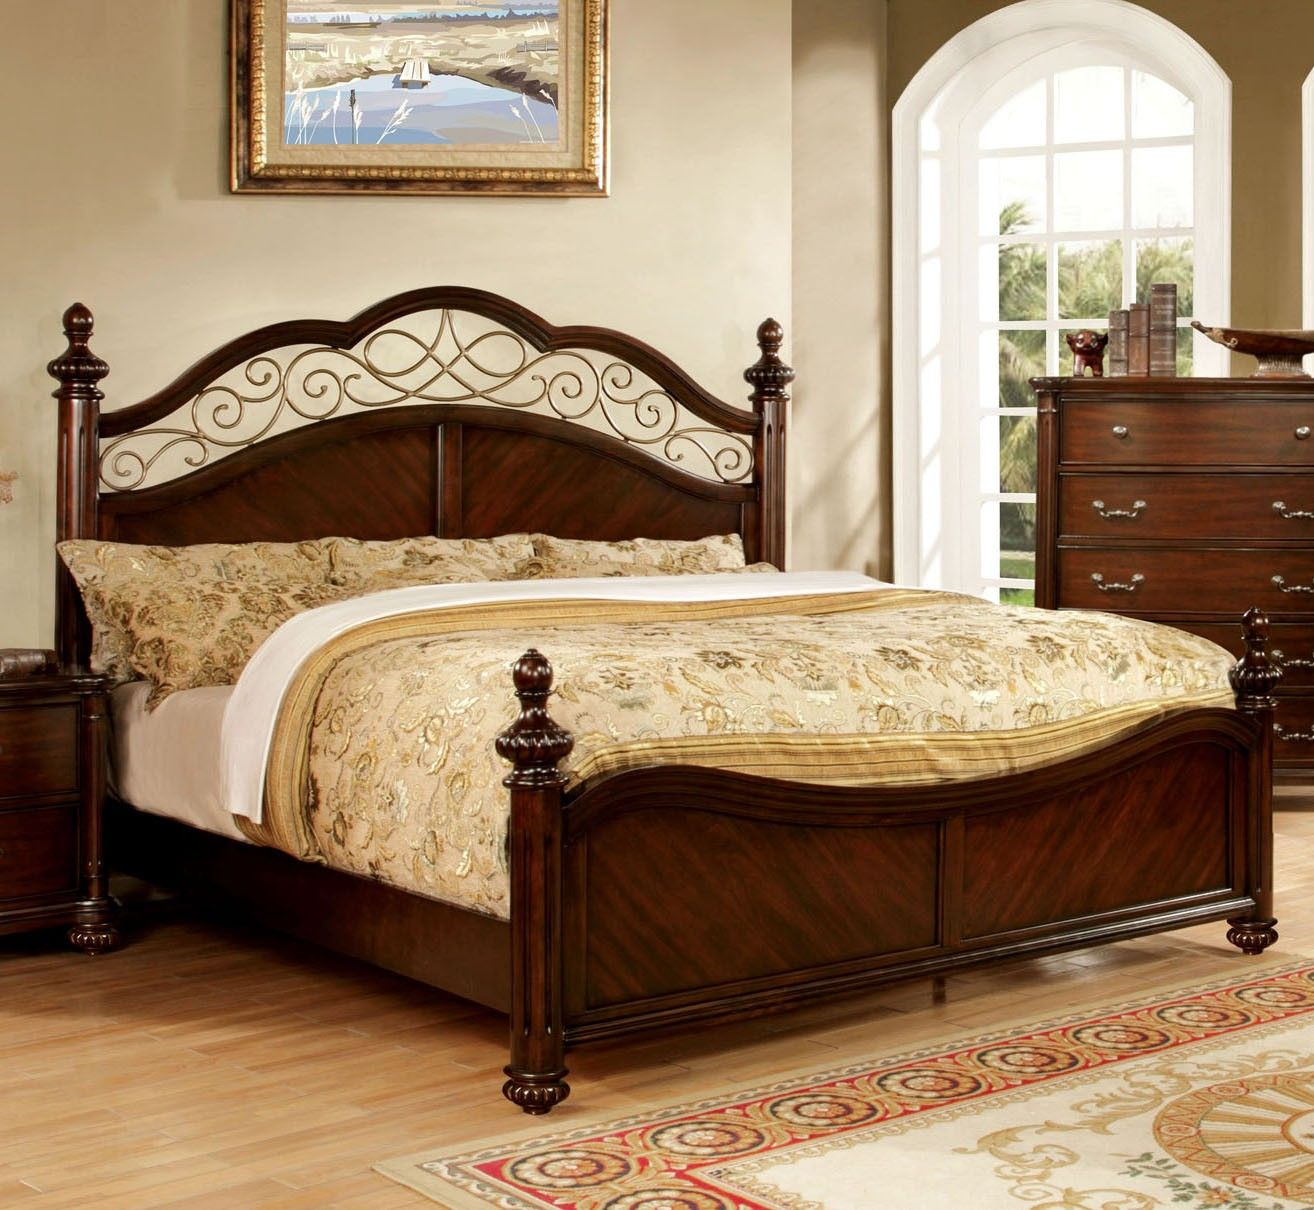 Moab CM7278Q Traditional Dark Cherry Wood Queen Bed King